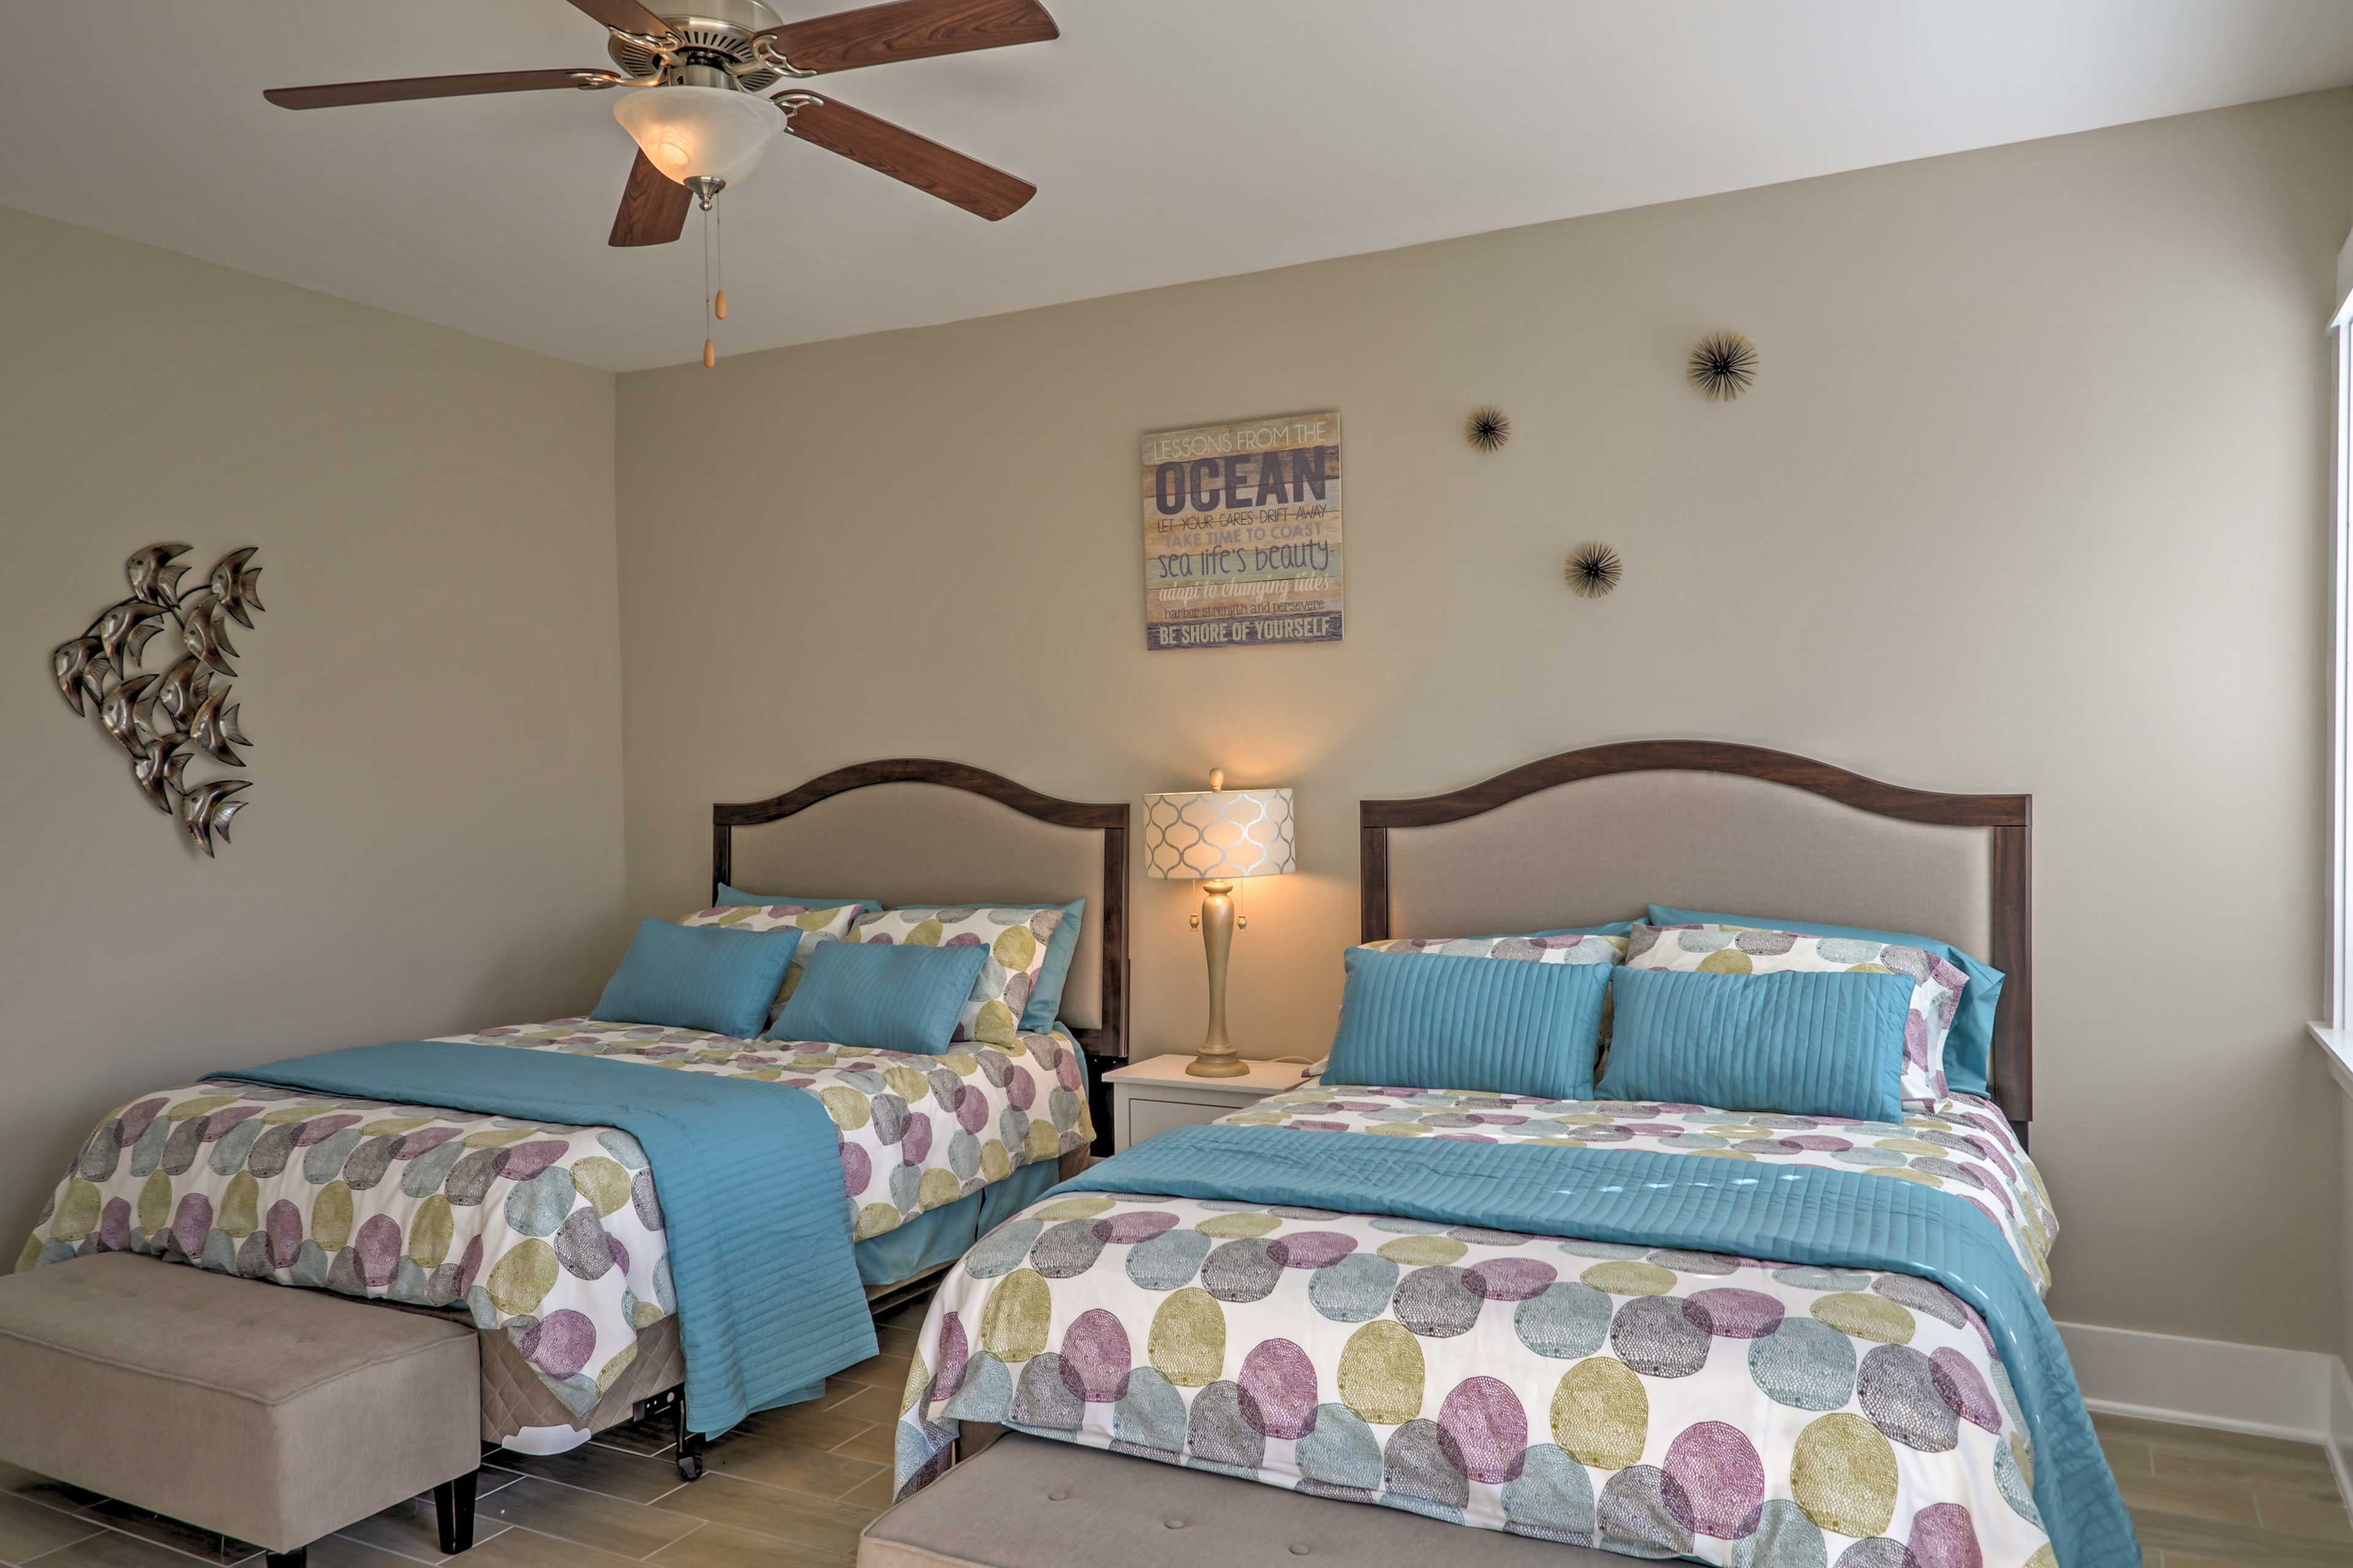 Sweet dreams of a beachy paradise await you in these queen-sized beds!